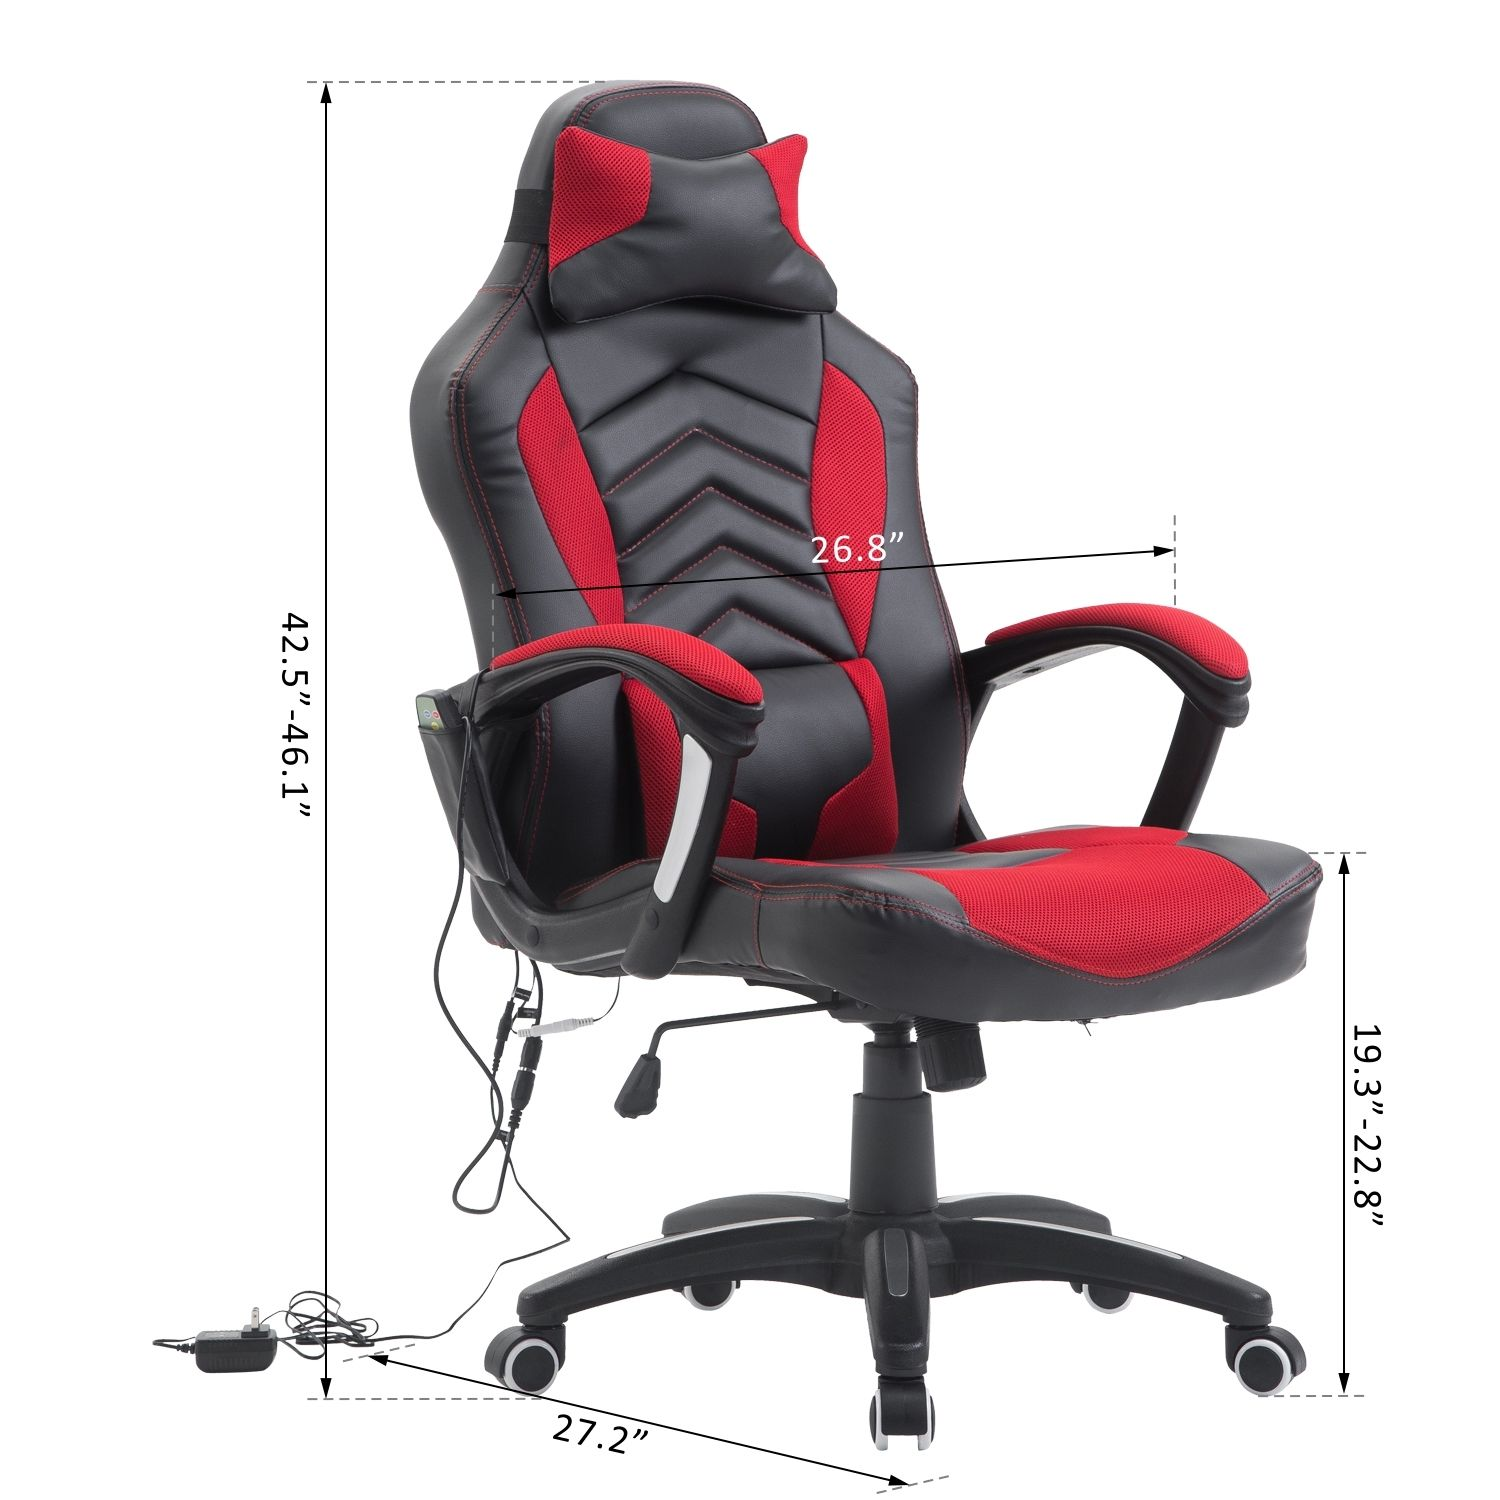 Massage Office Chair Details About Office Ergomomic Heated Vibrating Massage Chair Pu Leather Swivel Computer Seat